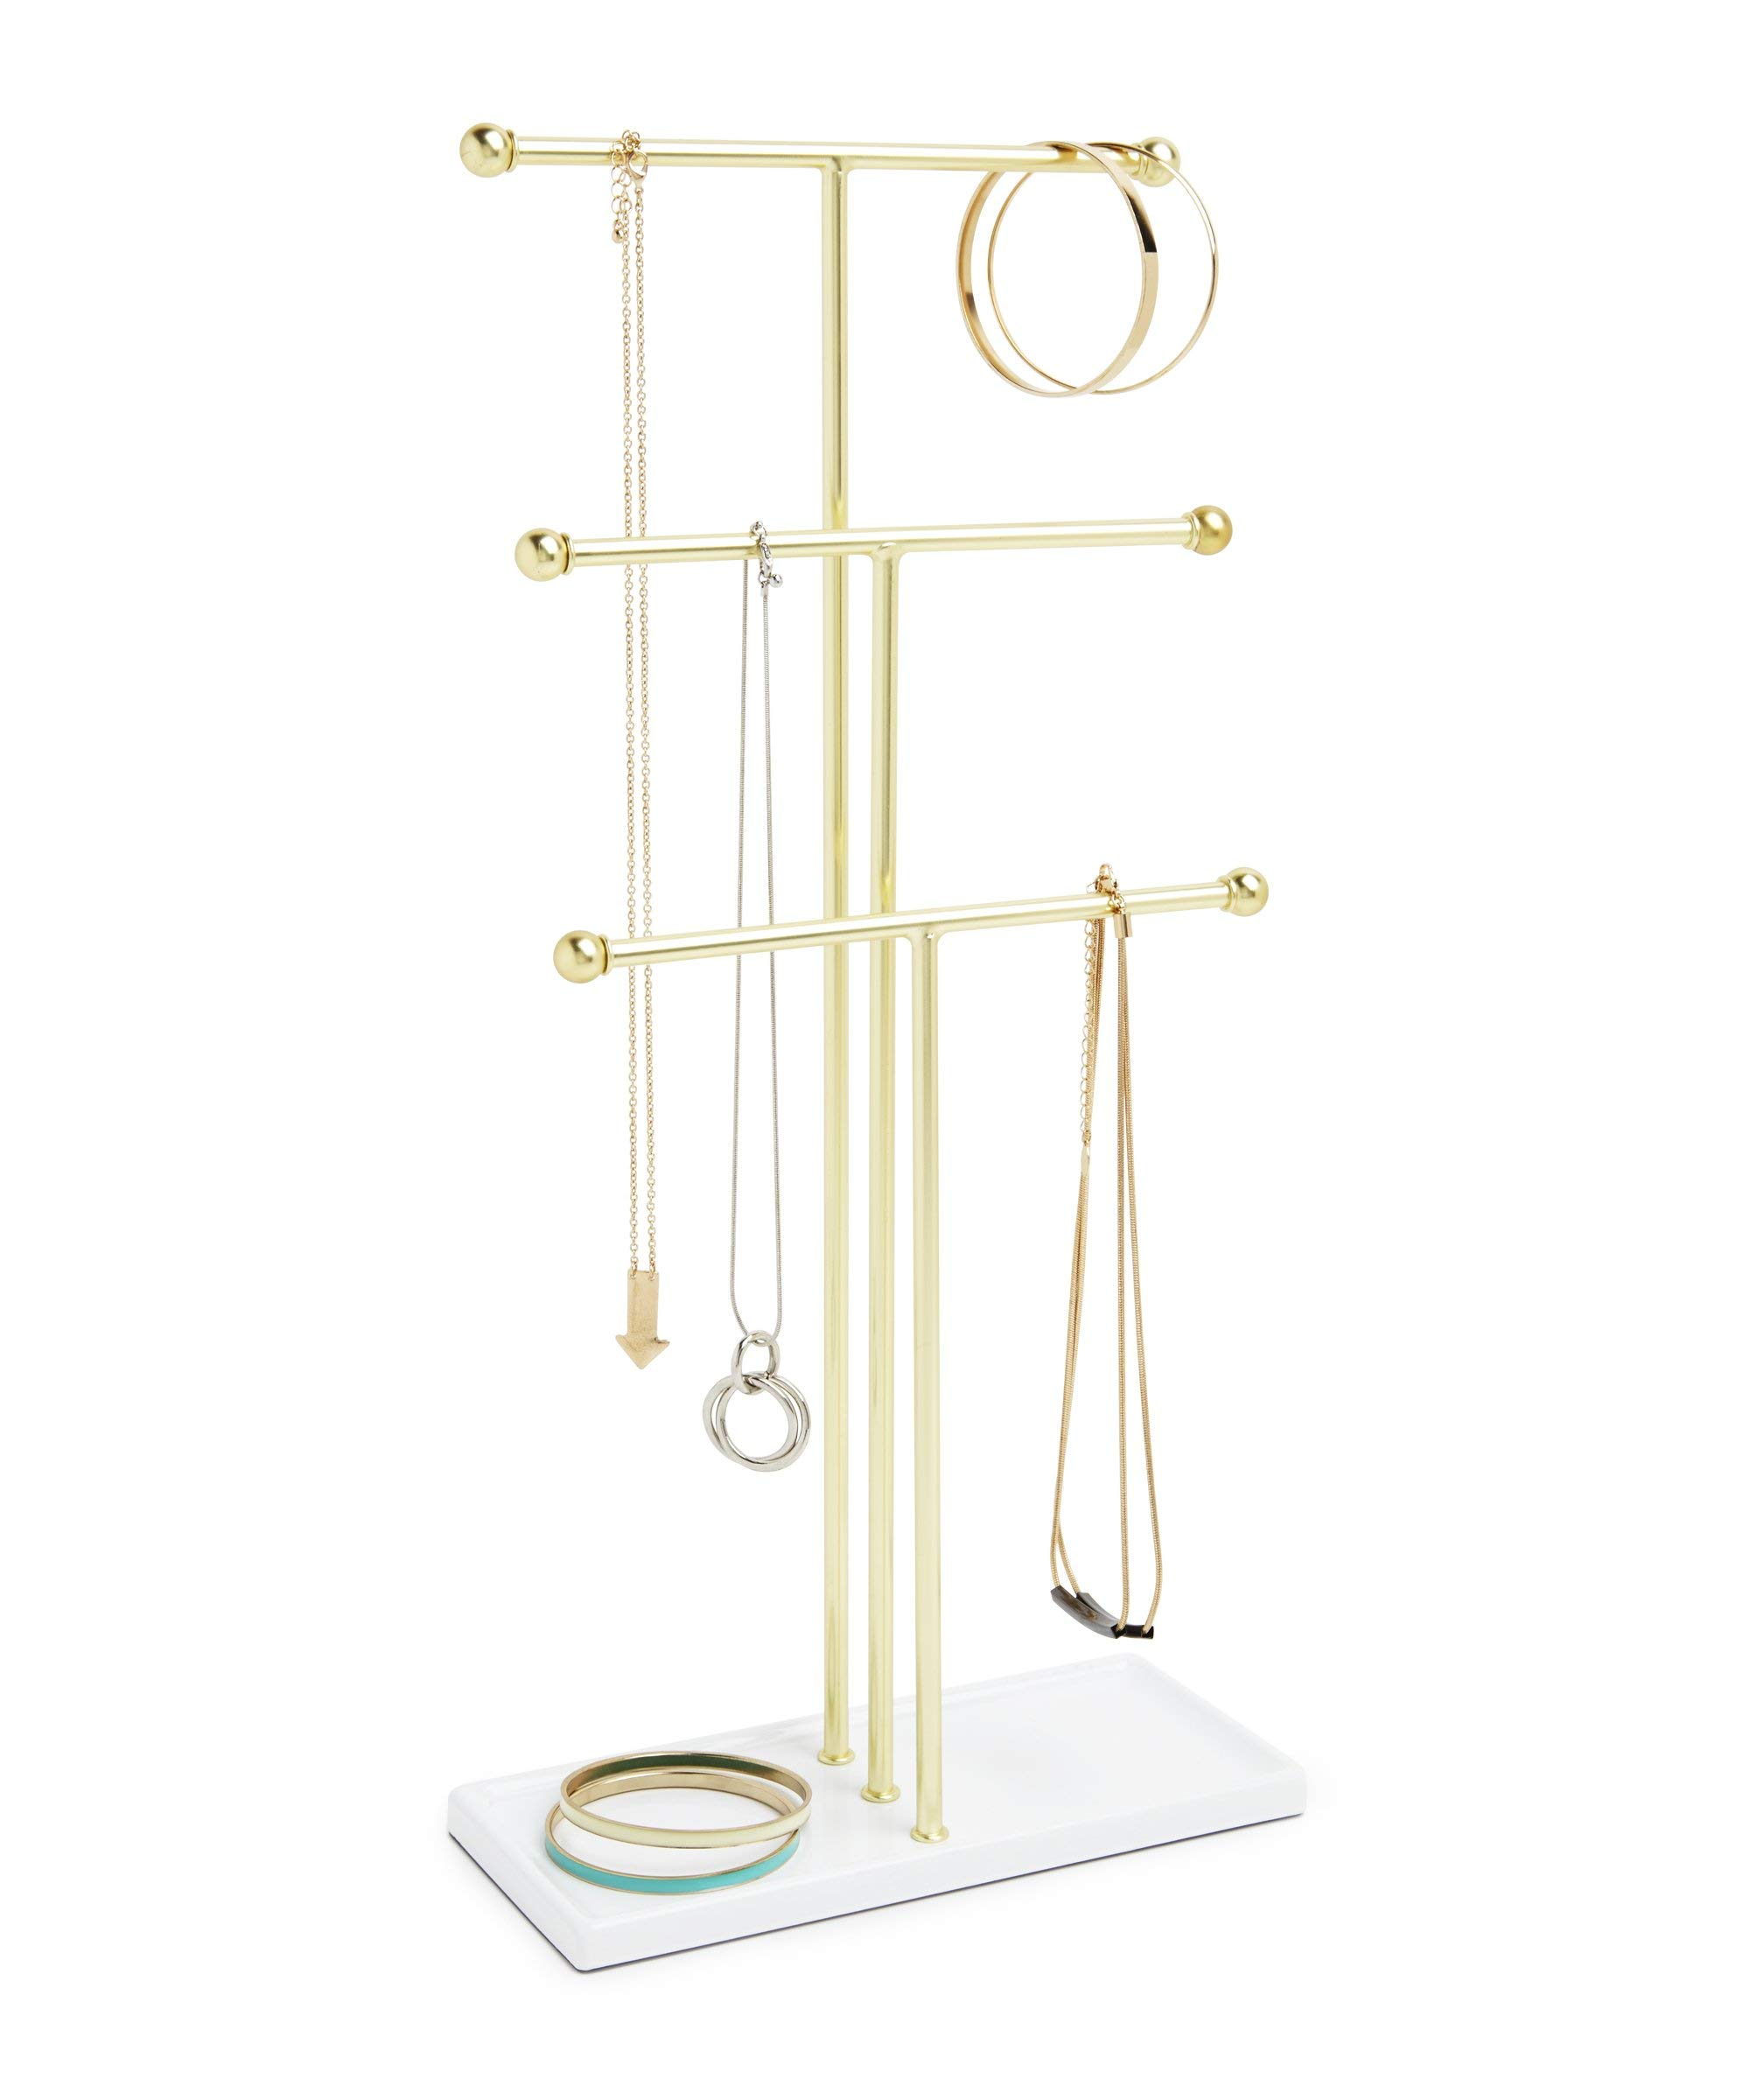 Umbra Trigem Hanging Jewelry Organizer - 3 Tier Table Top Necklace Holder and Display, White/Brass by Umbra